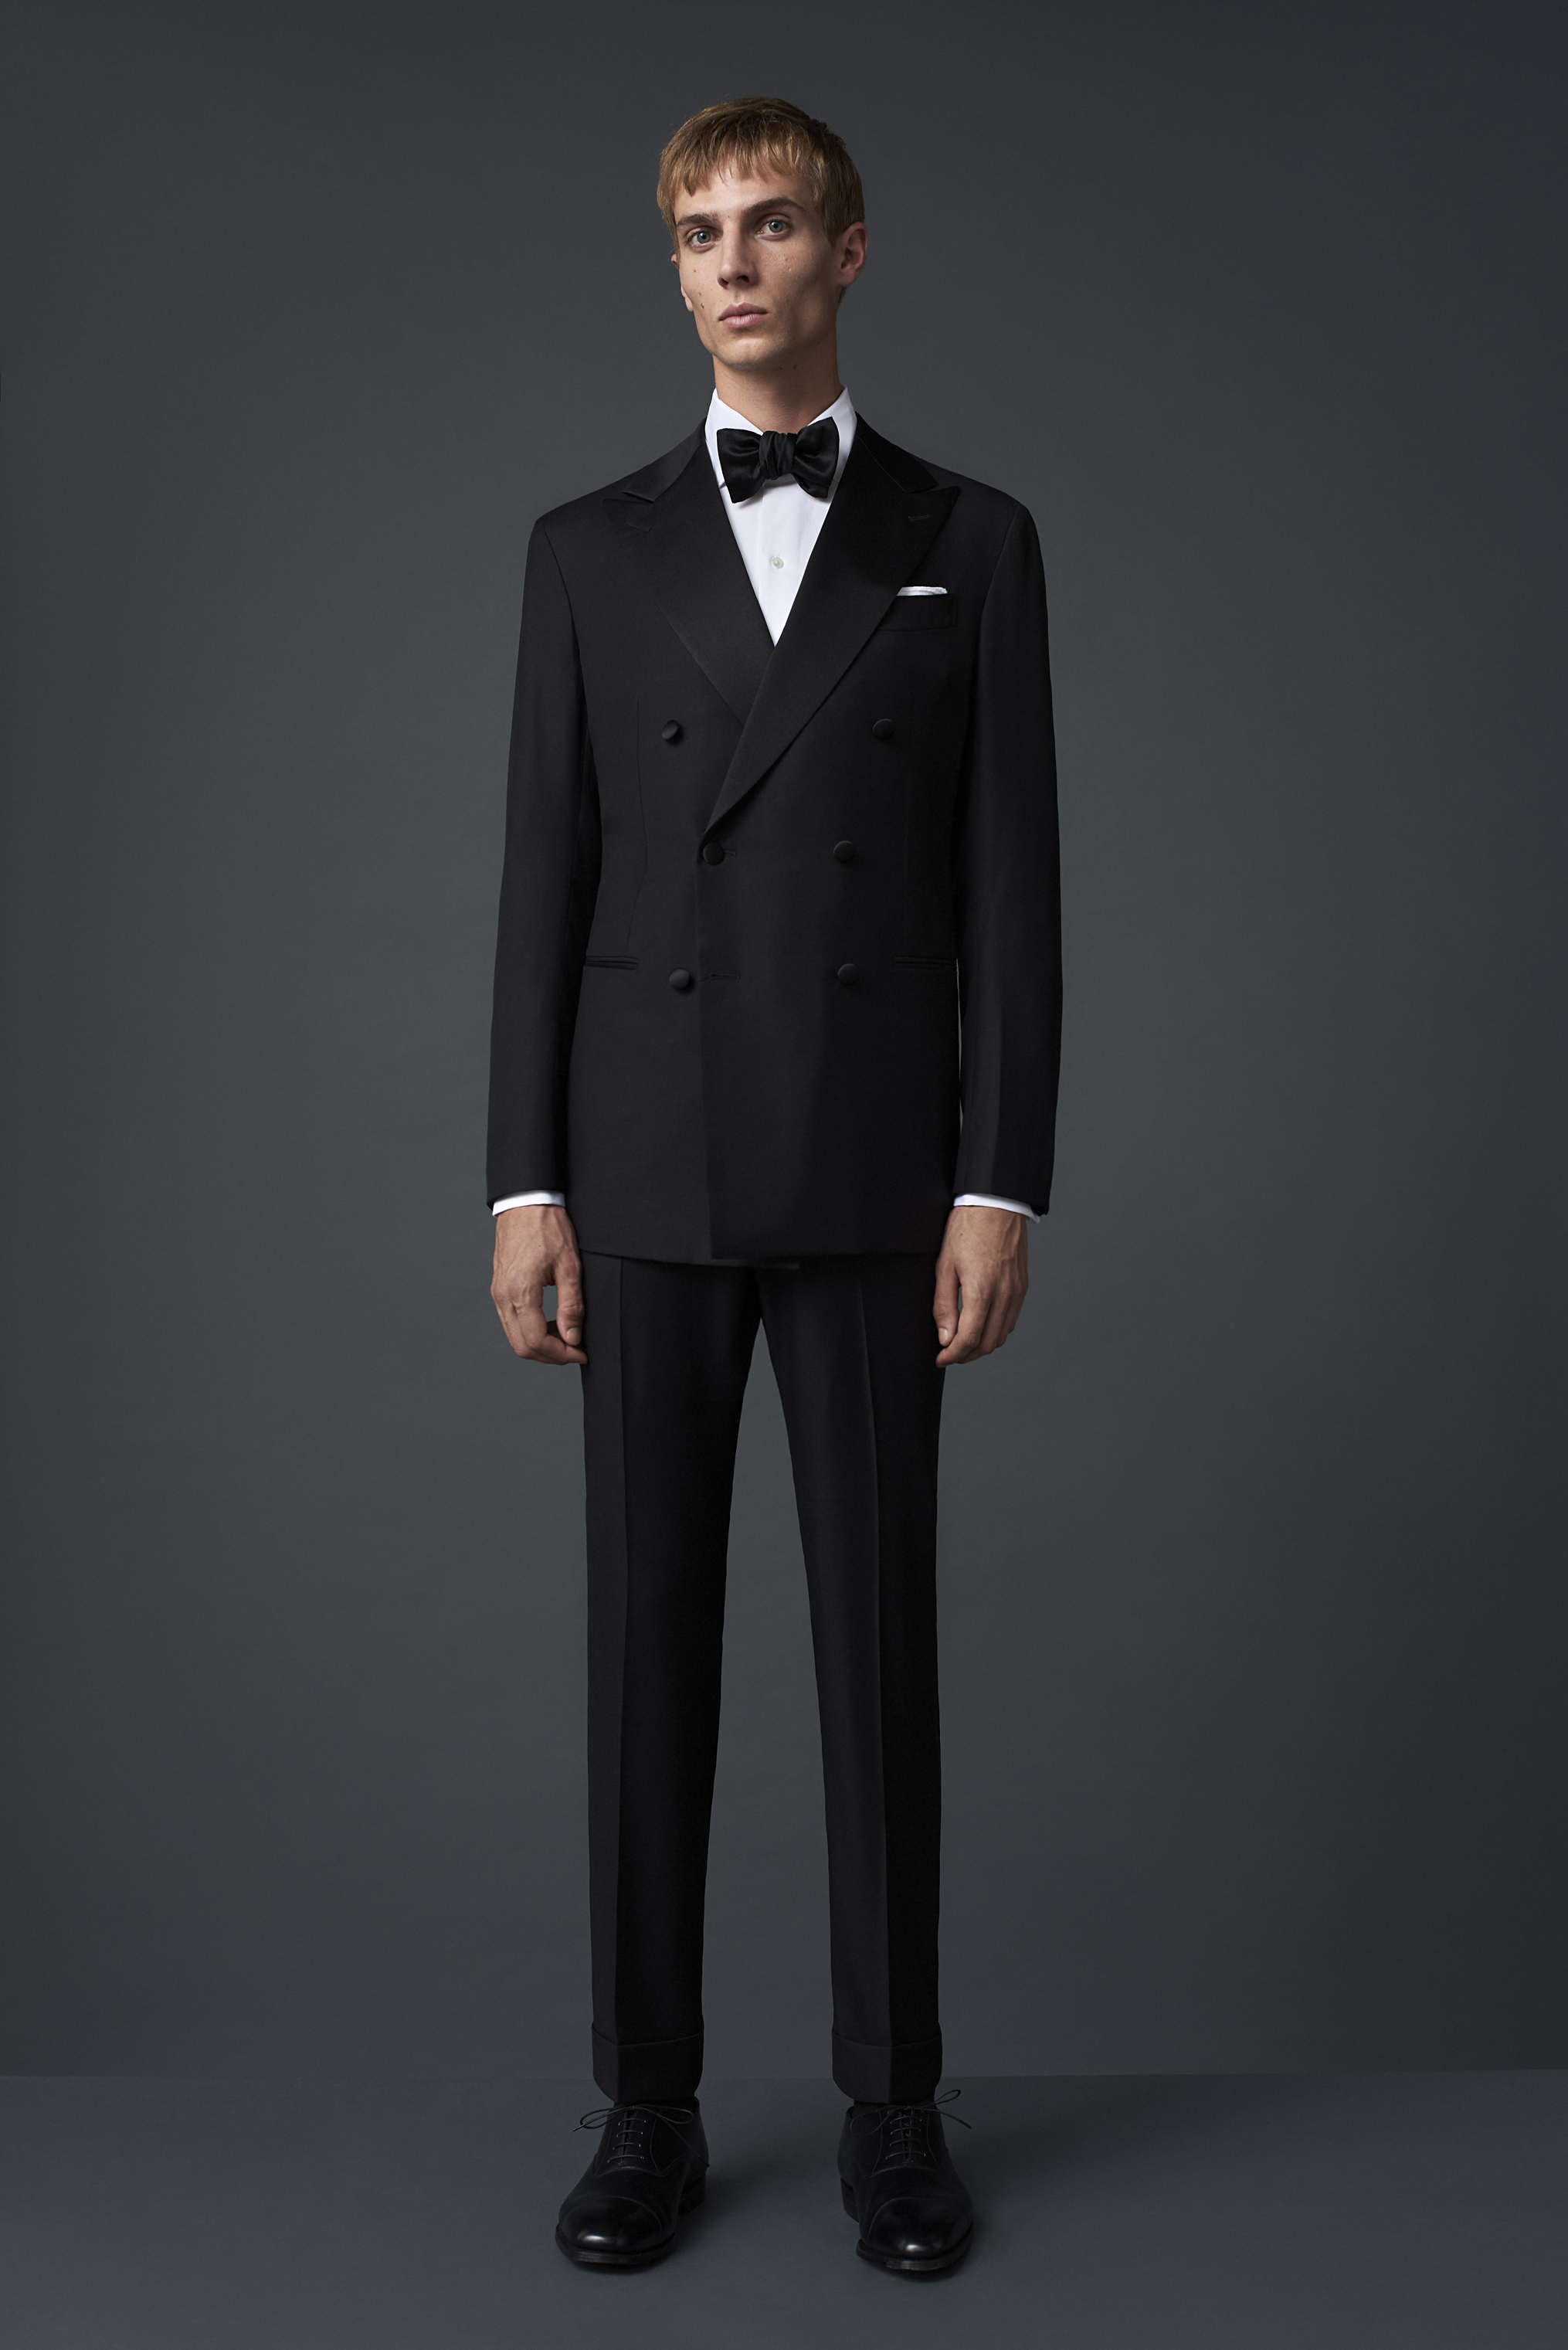 Black barathea 6x2 double breasted dinner suit woven in Biella, with satin facing. Worn with an Egyptian cotton dinner shirt with a marcella bib, and a classic satin bow tie.